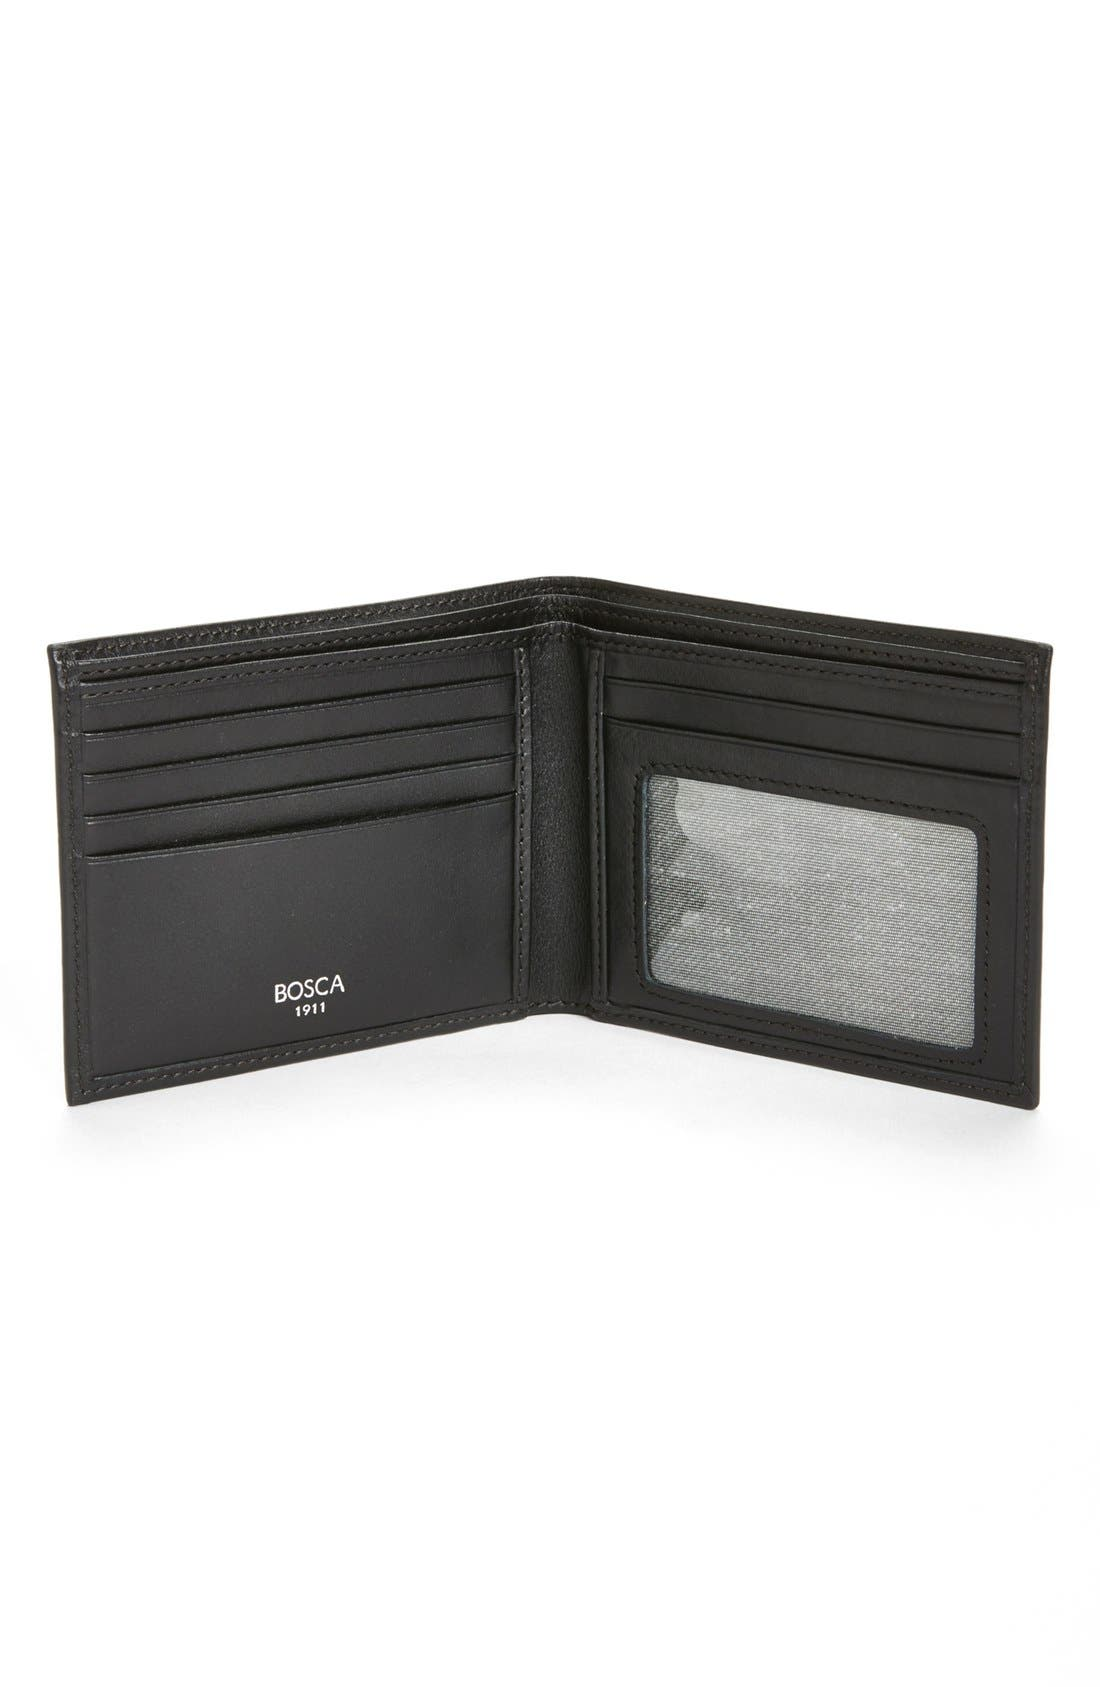 'Executive ID' Nappa Leather Wallet,                             Alternate thumbnail 4, color,                             BLACK